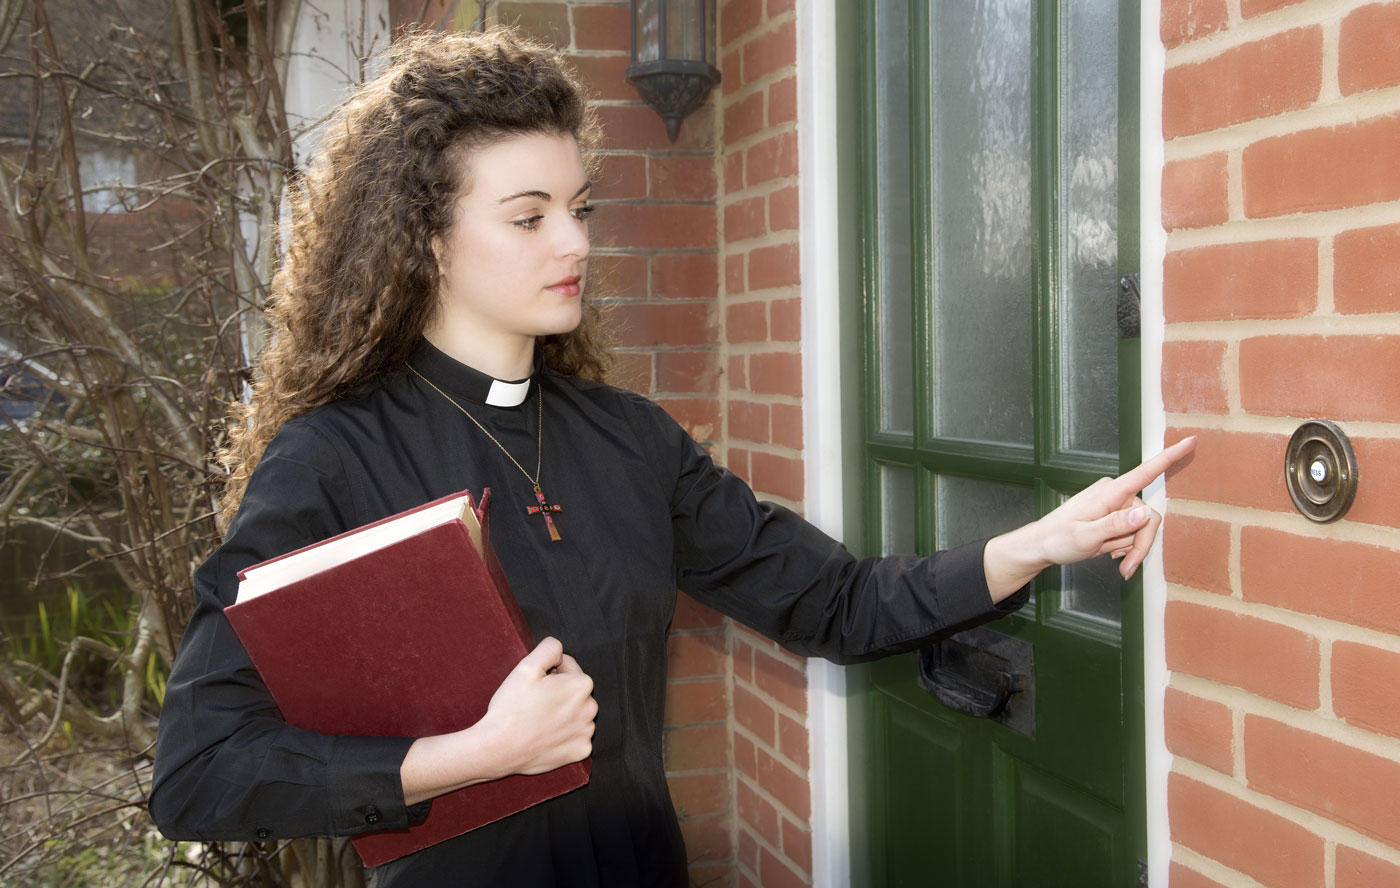 Clerical Clothing For Women